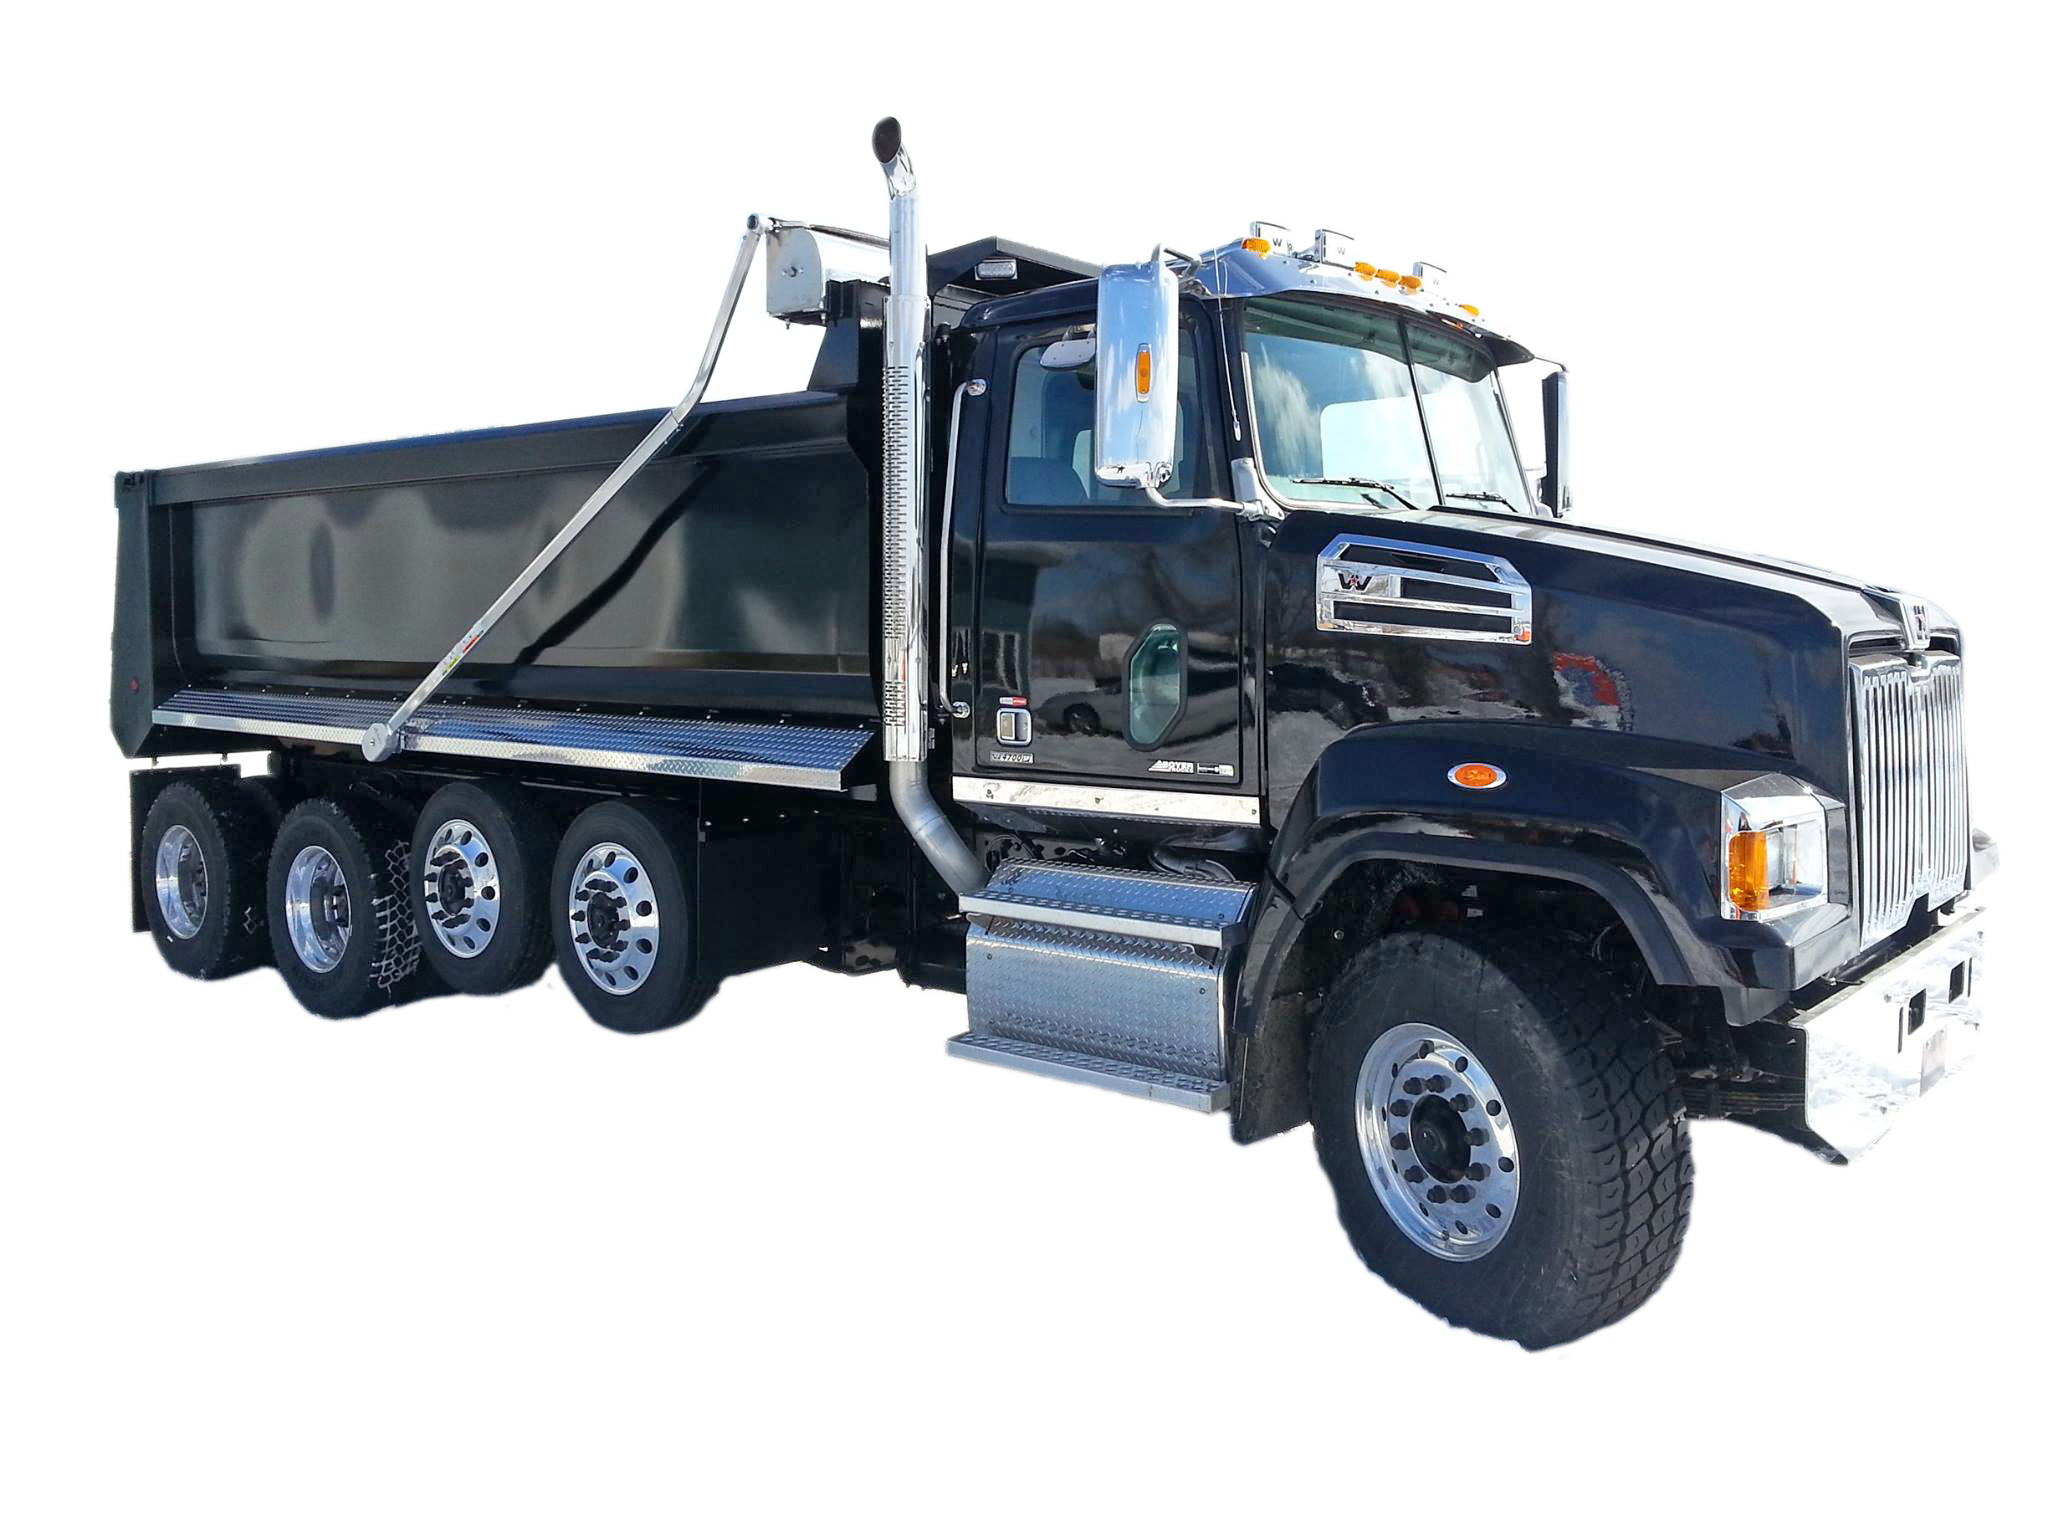 Black Dump Truck Equipment